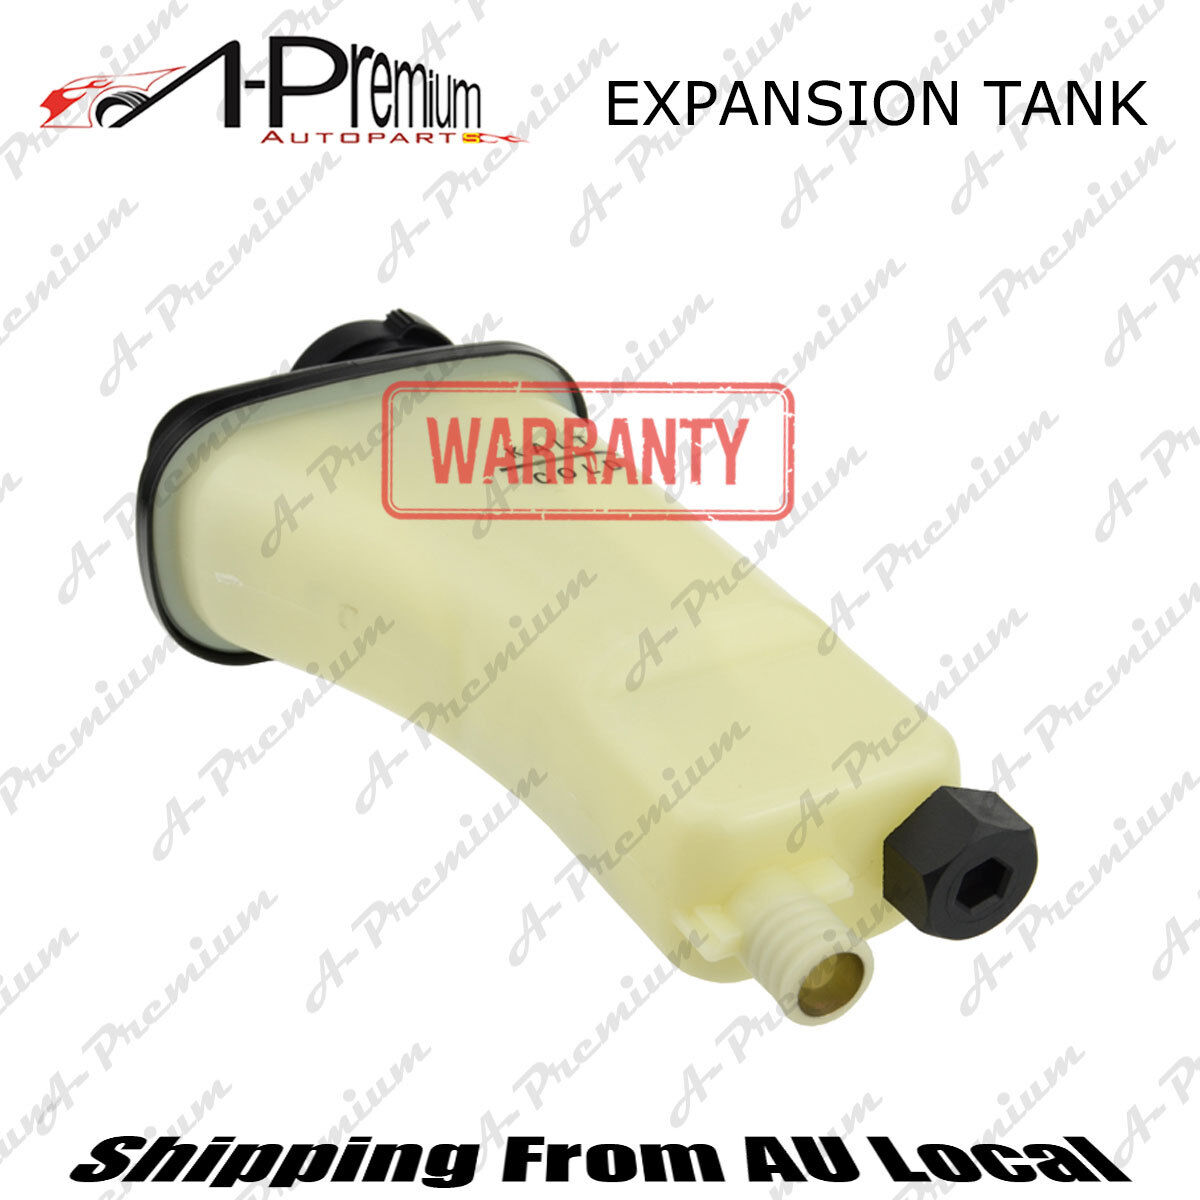 hight resolution of bmw e36 coolant expansion tank with level sensor cap bleed screw 17111723520 for sale online ebay